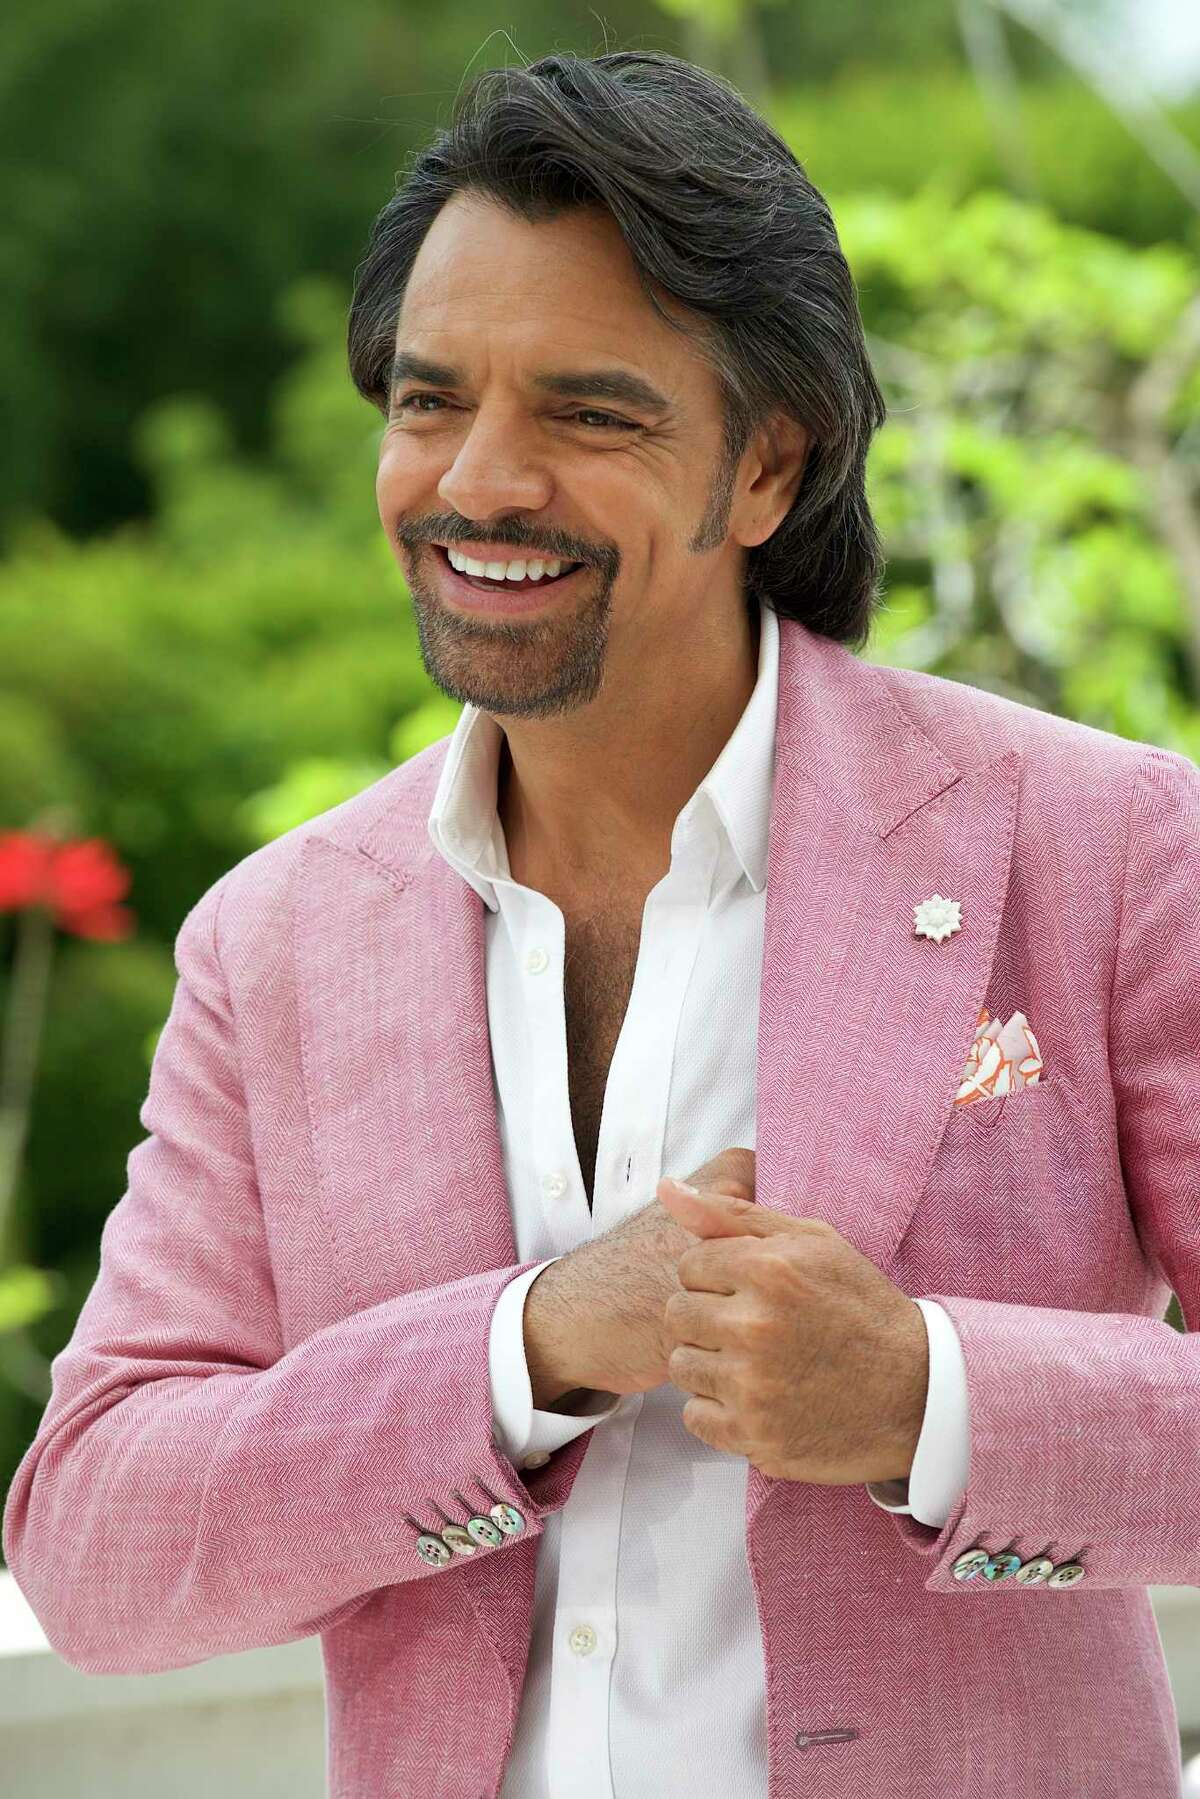 """Eugenio Derbez as Maximo in the comedy movie """"How to be a Latin Lover."""""""